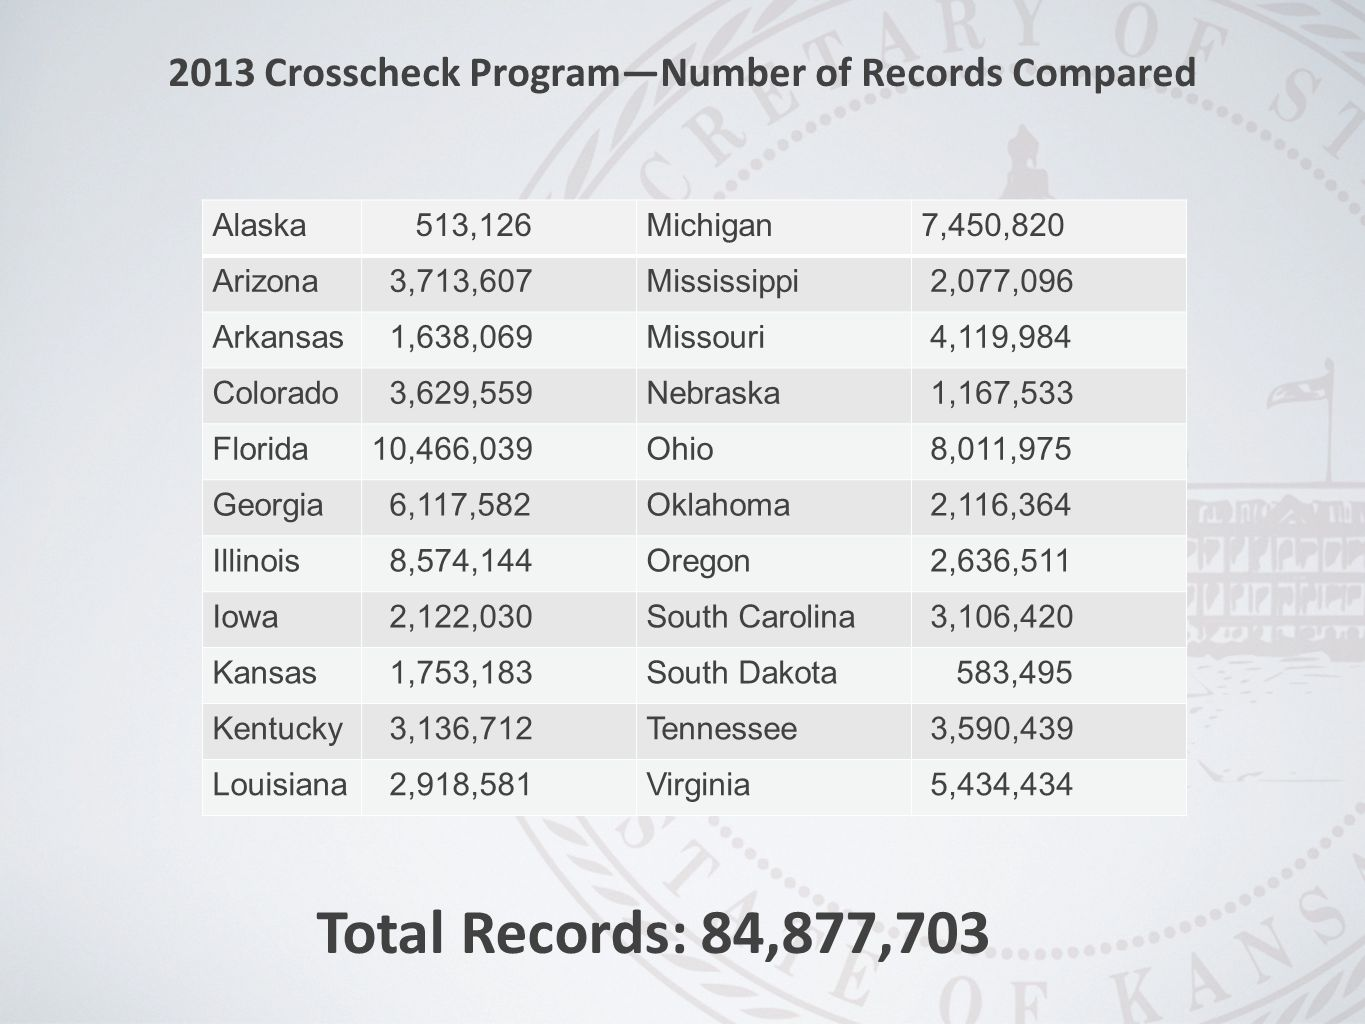 2013 Crosscheck Program—Number of Records Compared Total Records:84,877,703 Alaska 513,126Michigan7,450,820 Arizona 3,713,607Mississippi 2,077,096 Arkansas 1,638,069Missouri 4,119,984 Colorado 3,629,559Nebraska 1,167,533 Florida10,466,039Ohio 8,011,975 Georgia 6,117,582Oklahoma 2,116,364 Illinois 8,574,144Oregon 2,636,511 Iowa 2,122,030South Carolina 3,106,420 Kansas 1,753,183South Dakota 583,495 Kentucky 3,136,712Tennessee 3,590,439 Louisiana 2,918,581Virginia 5,434,434